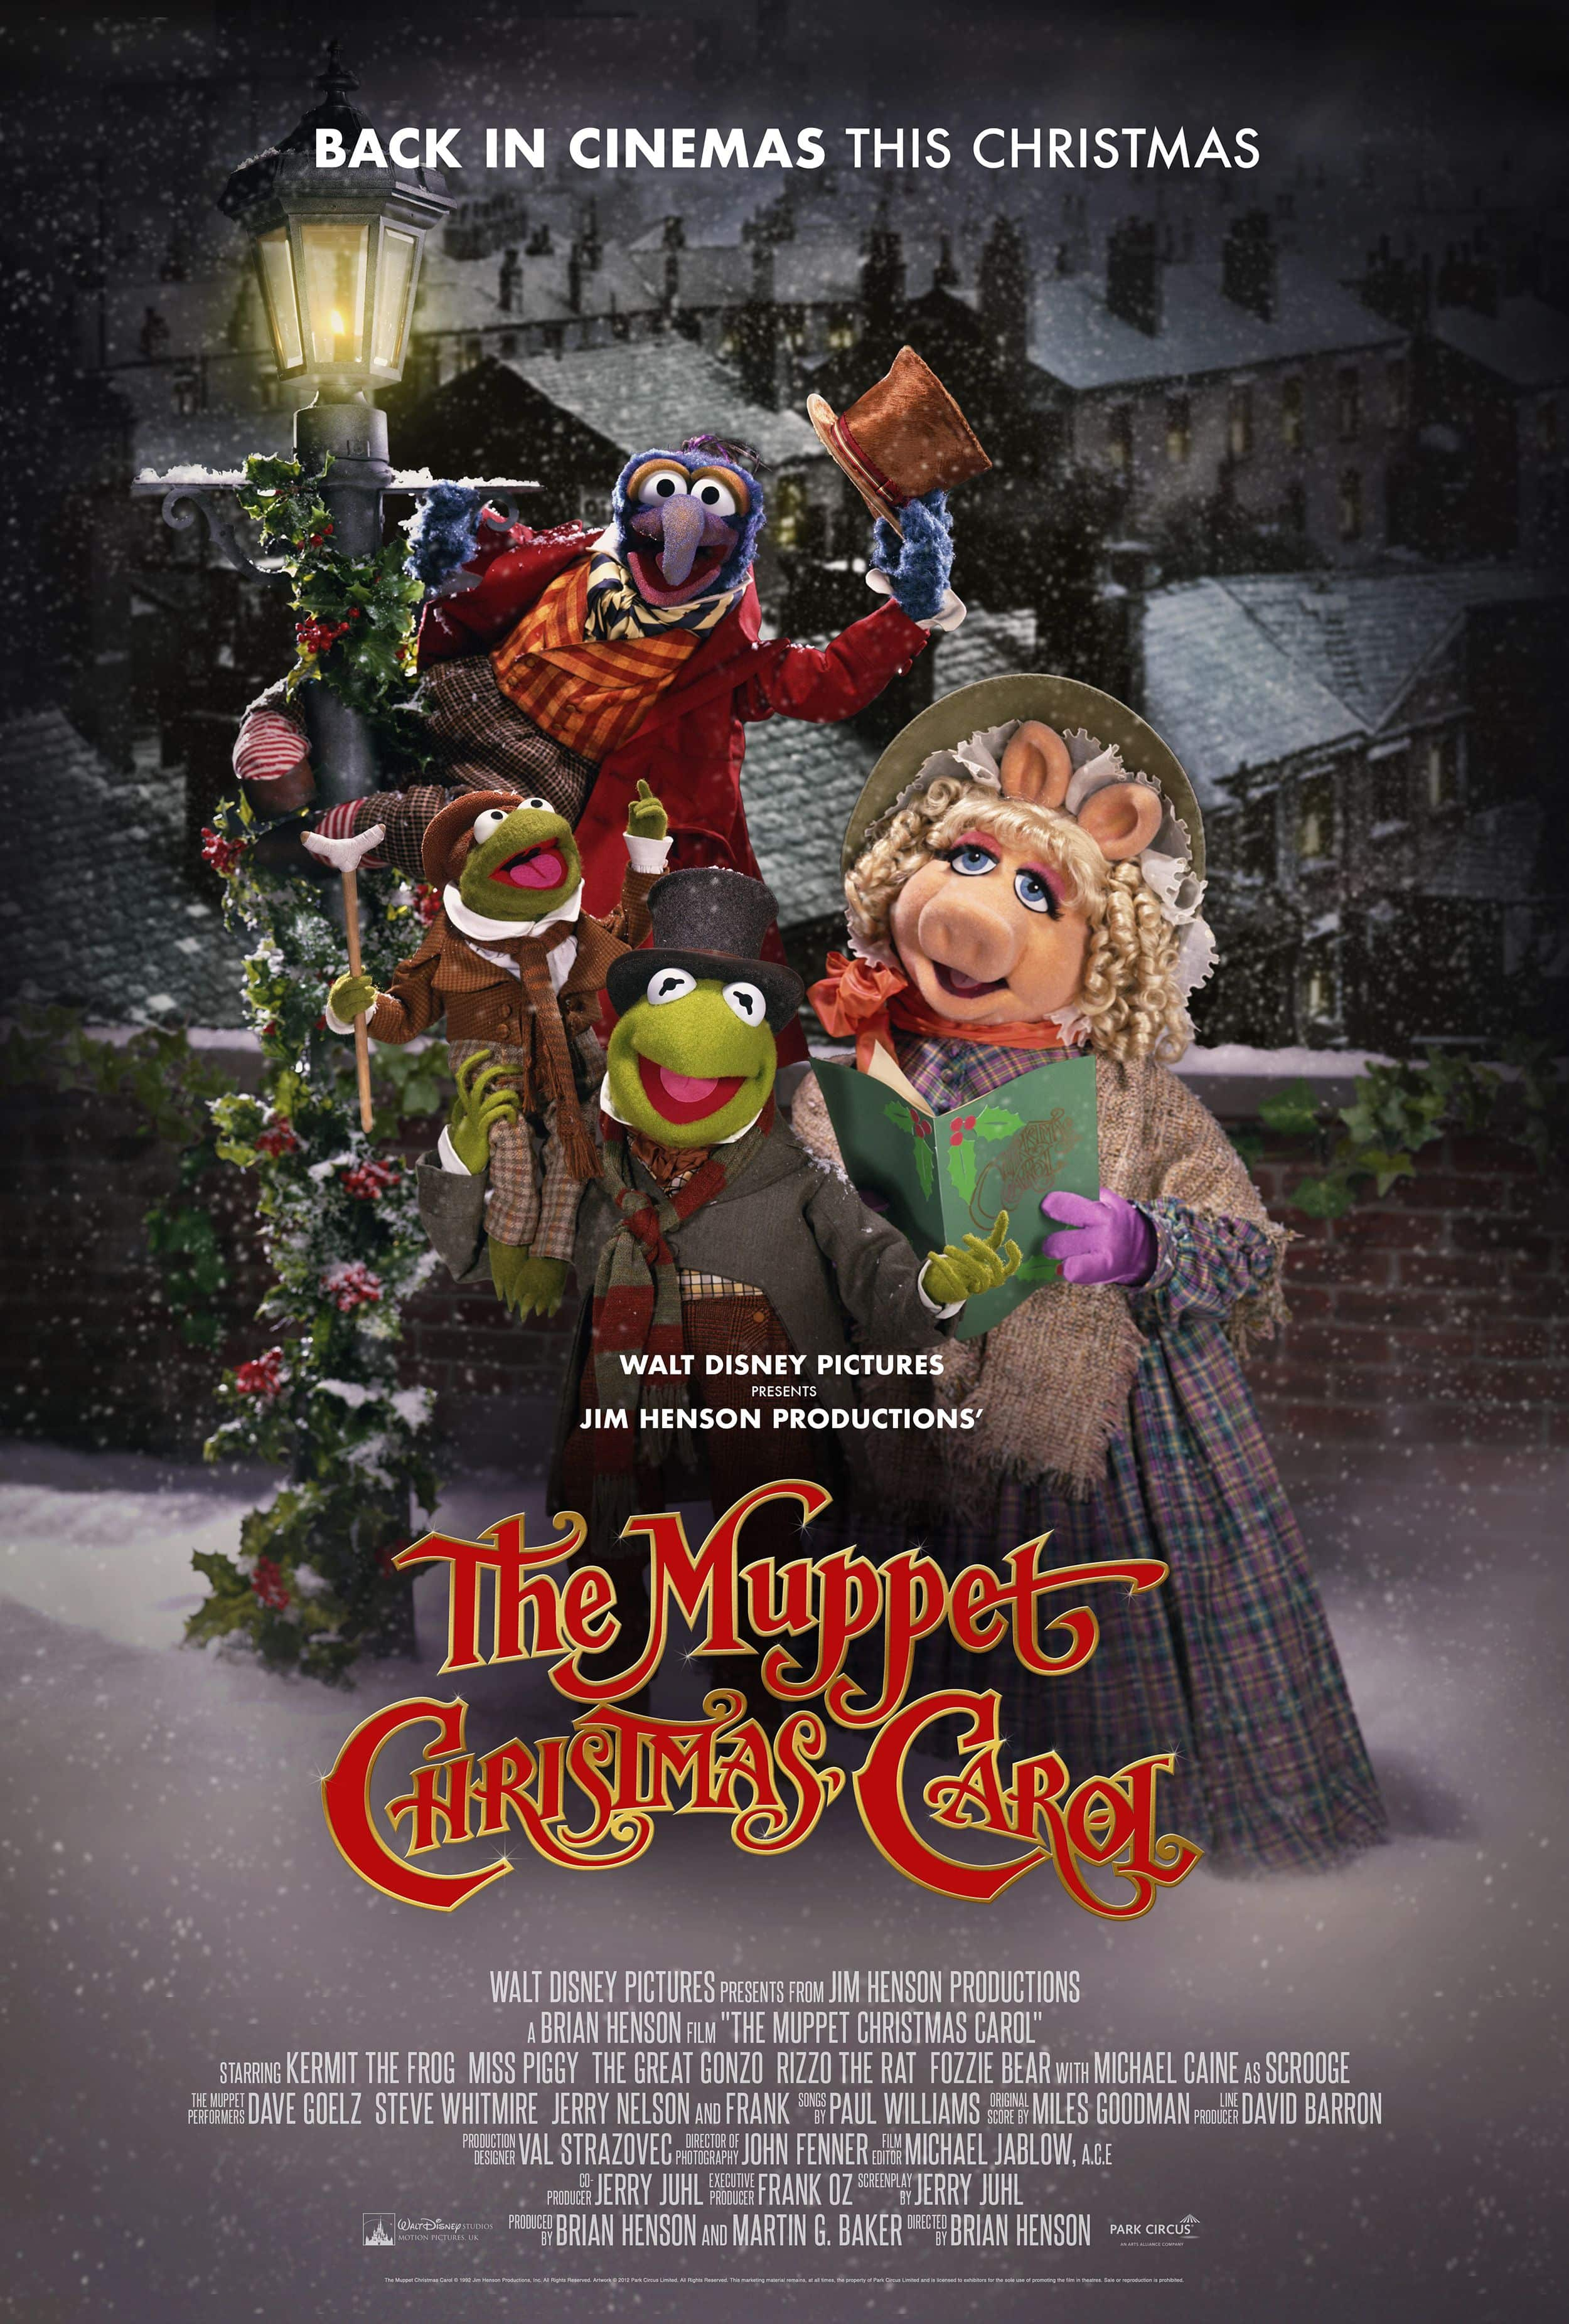 The Muppet Christmas Carol Re-Release